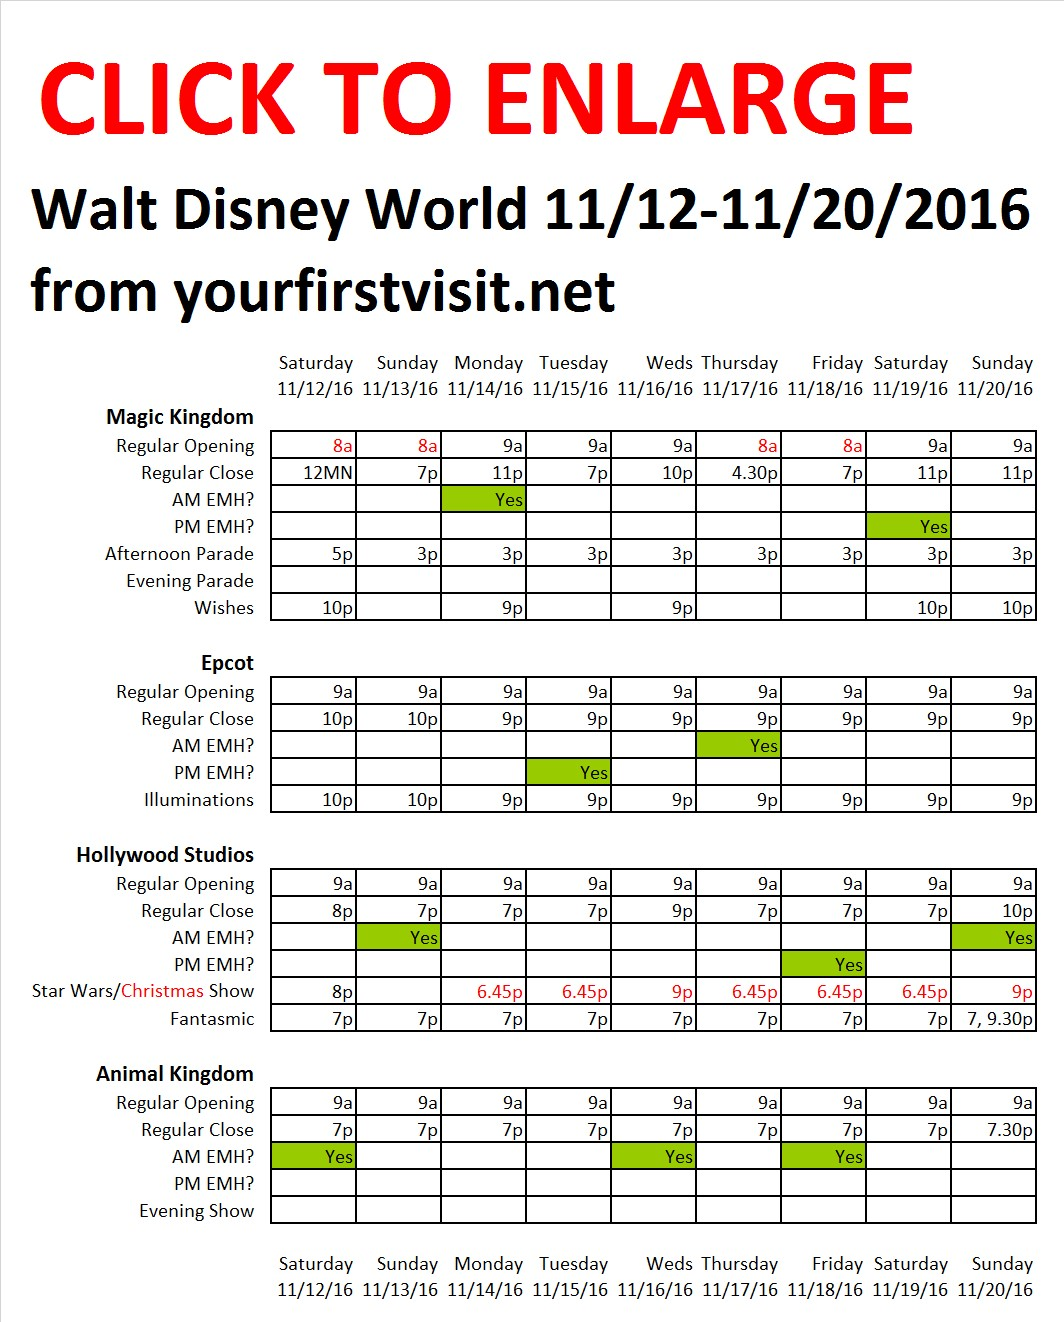 disney-world-11-12-to-11-20-2016-from-yourfirstvisit-net